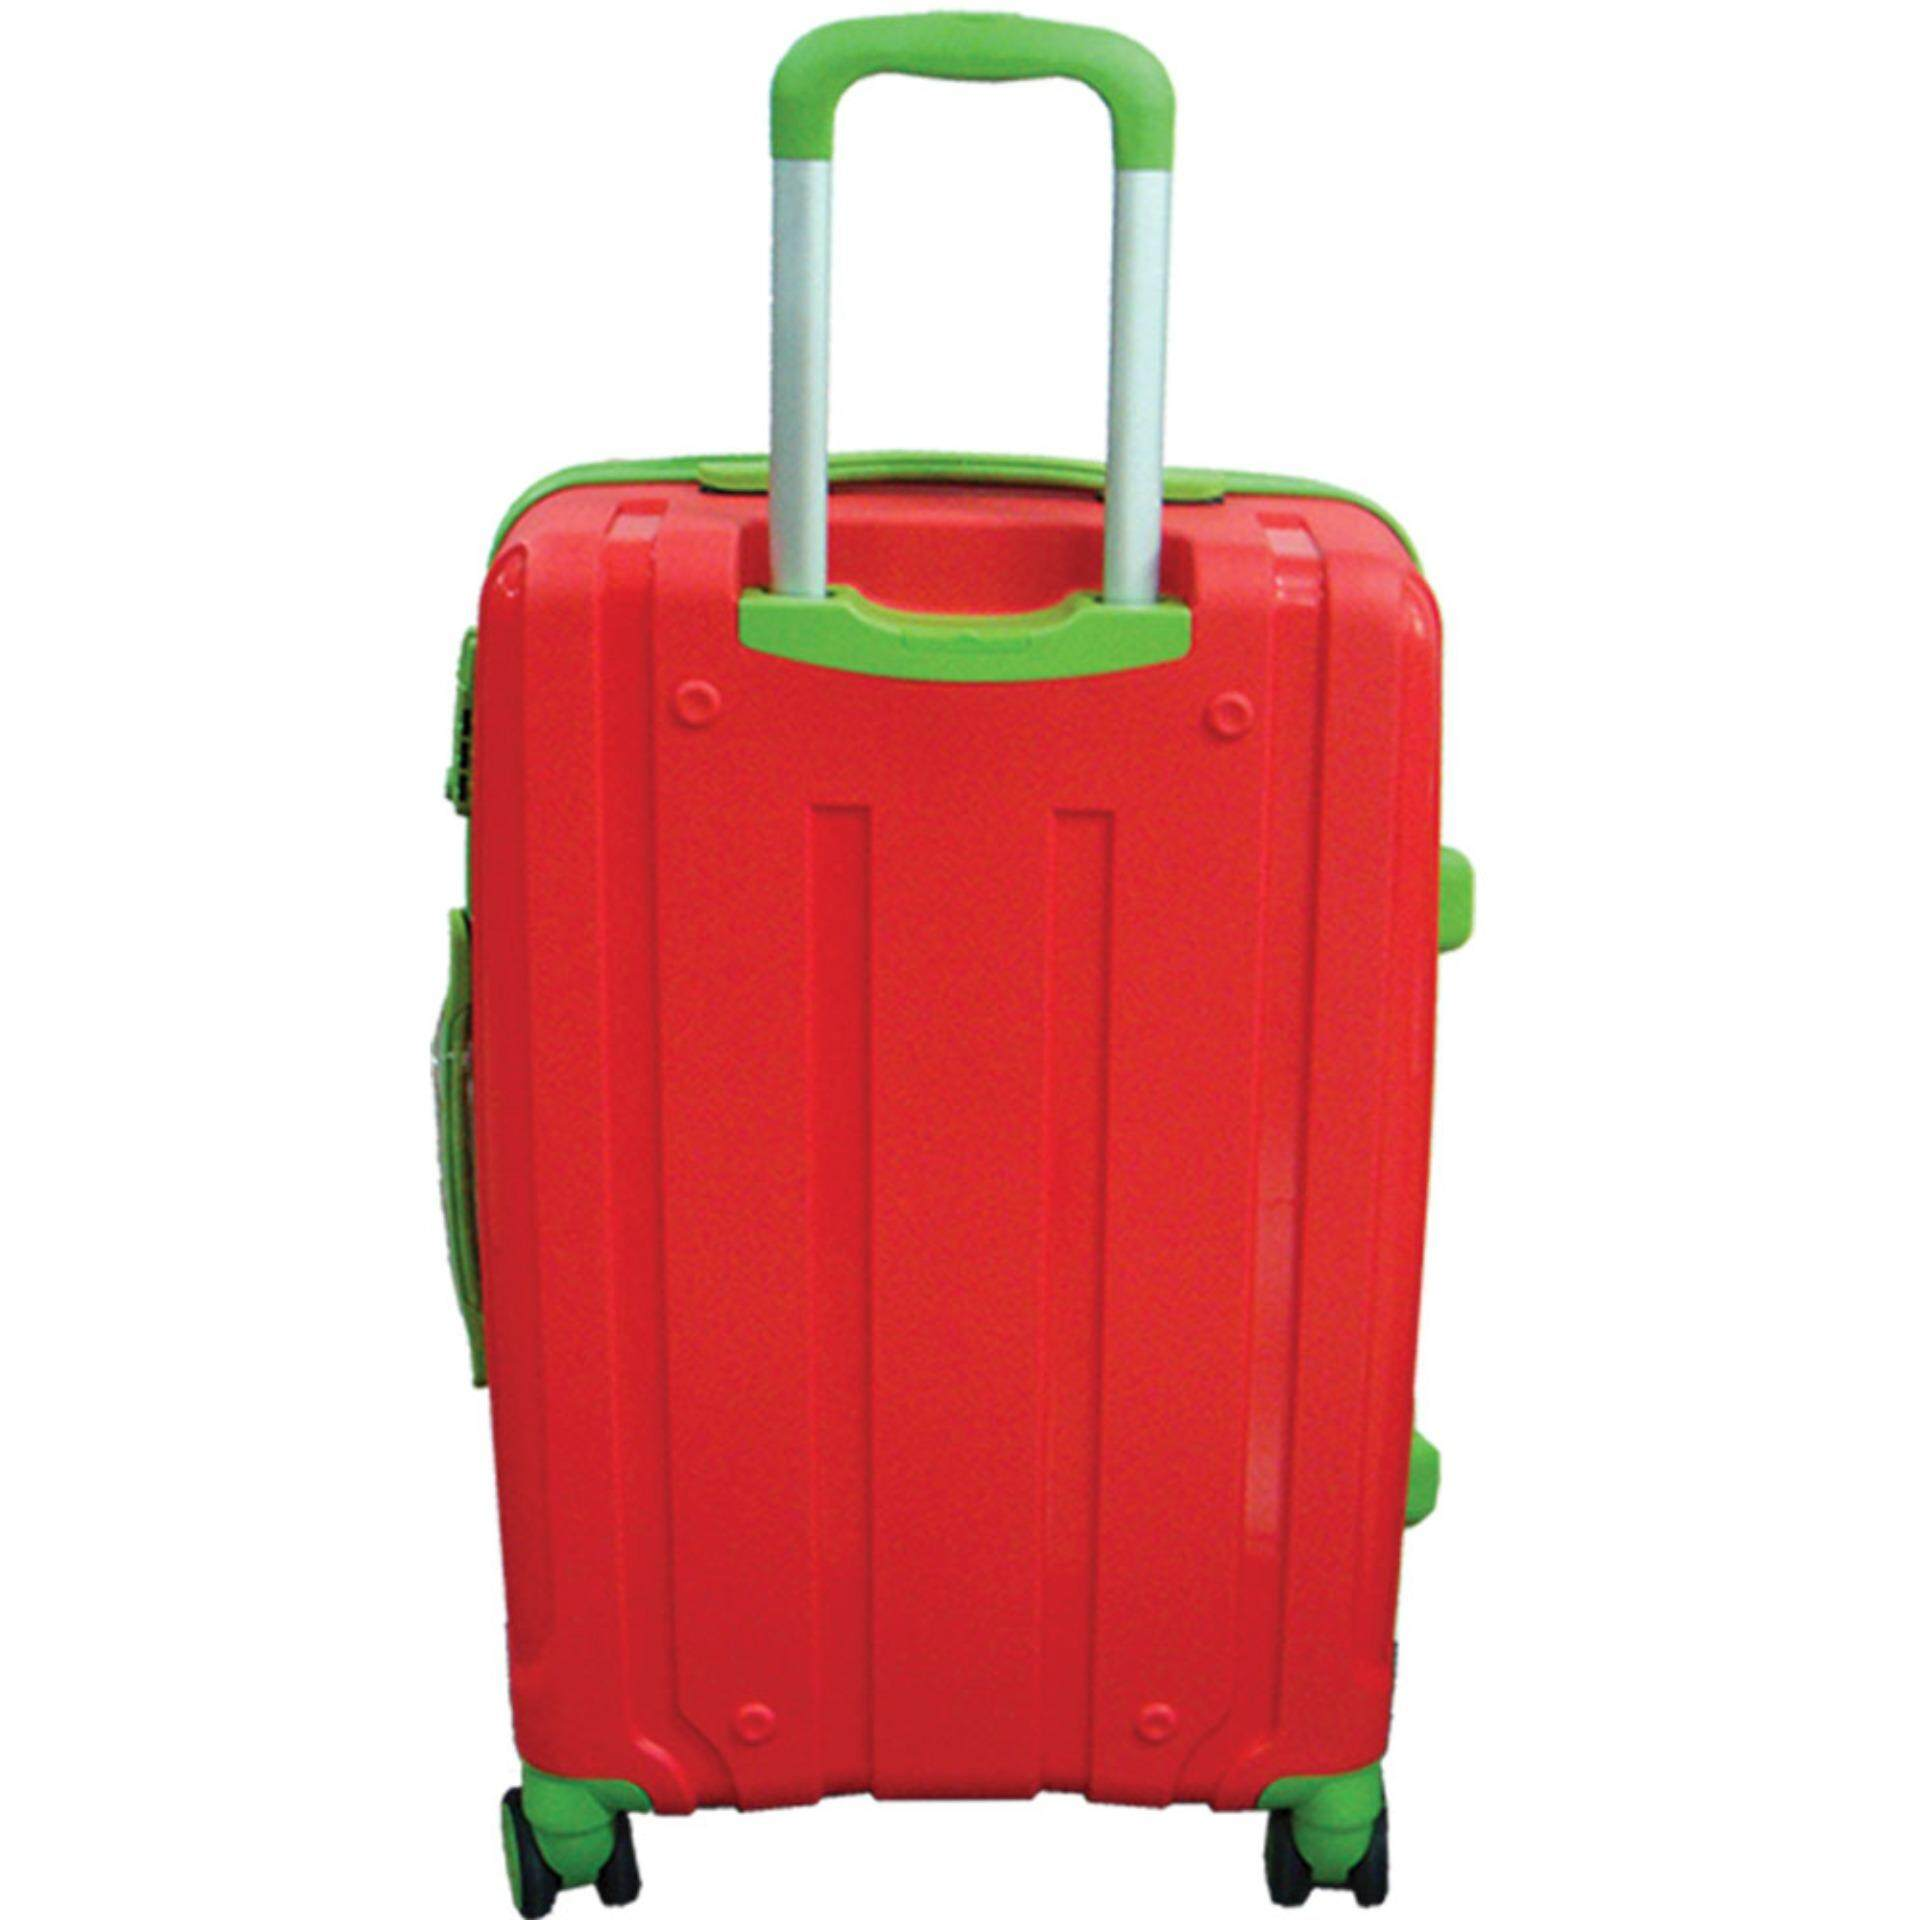 Giordano PPZ301  3-in-1 Unbreakable PP Hard Case Trolley (Red Green)